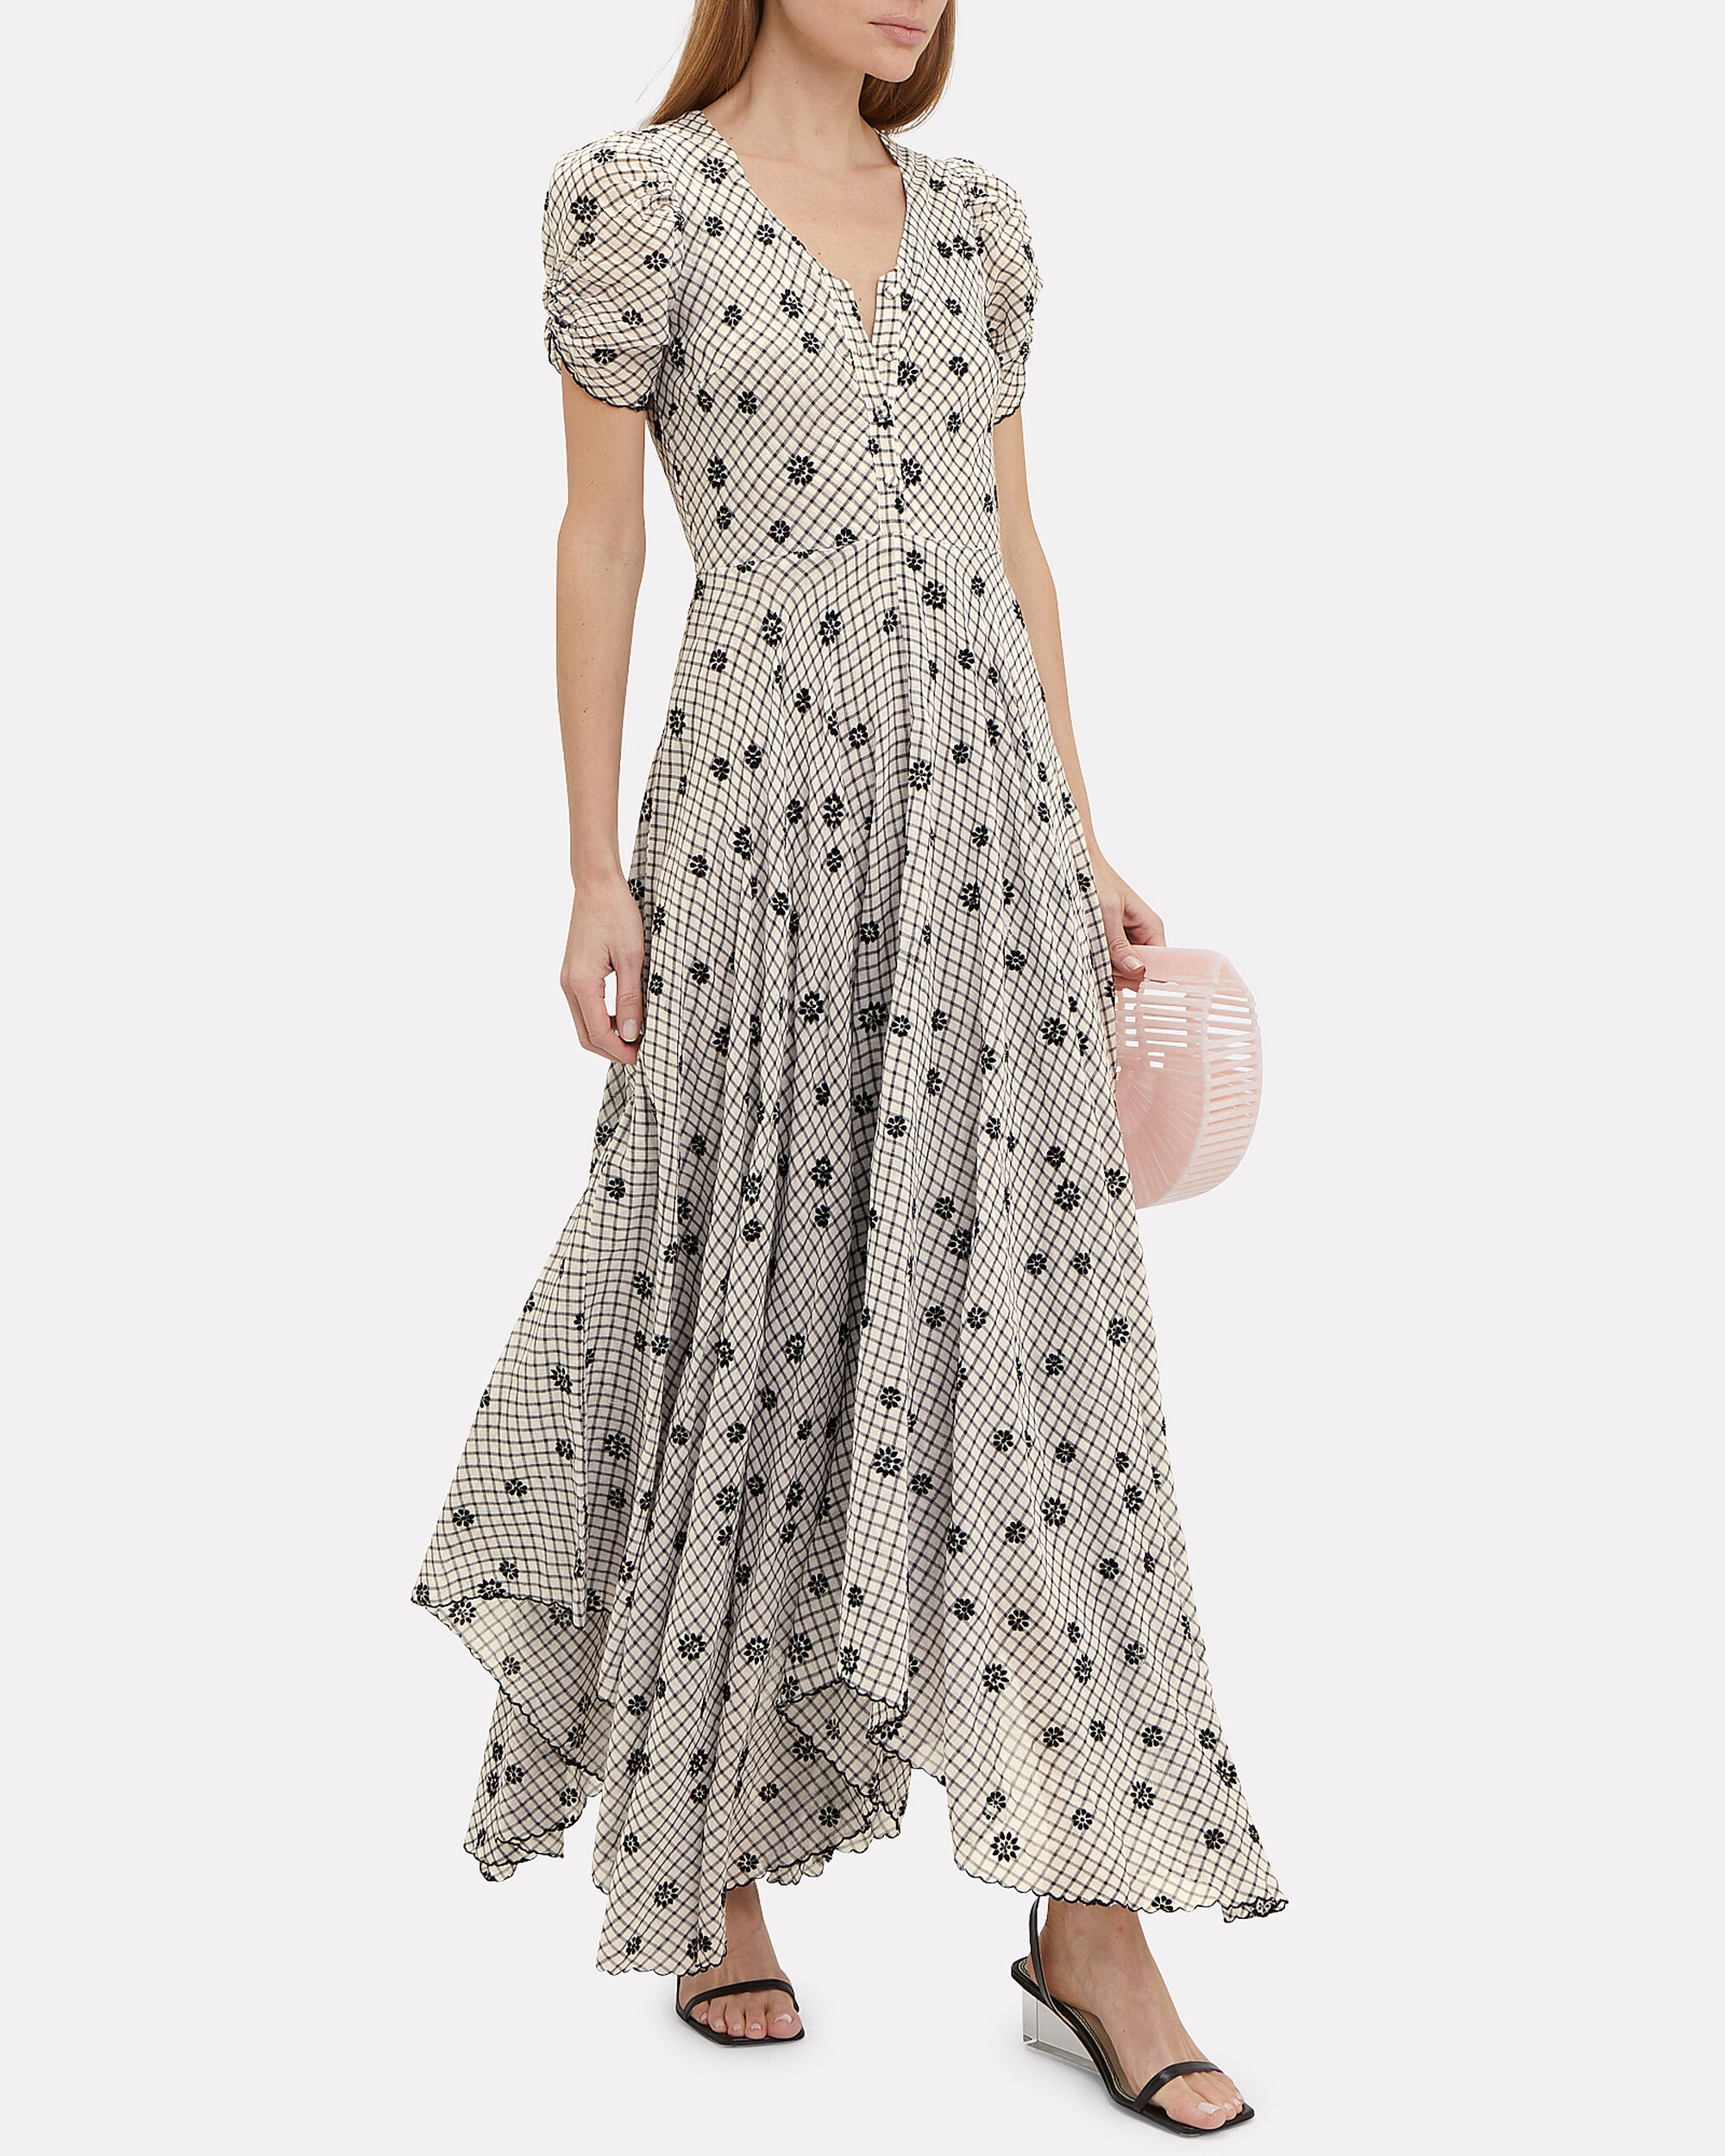 Coraline Gingham Embroidered Maxi Dress, BLACK/WHITE, hi-res